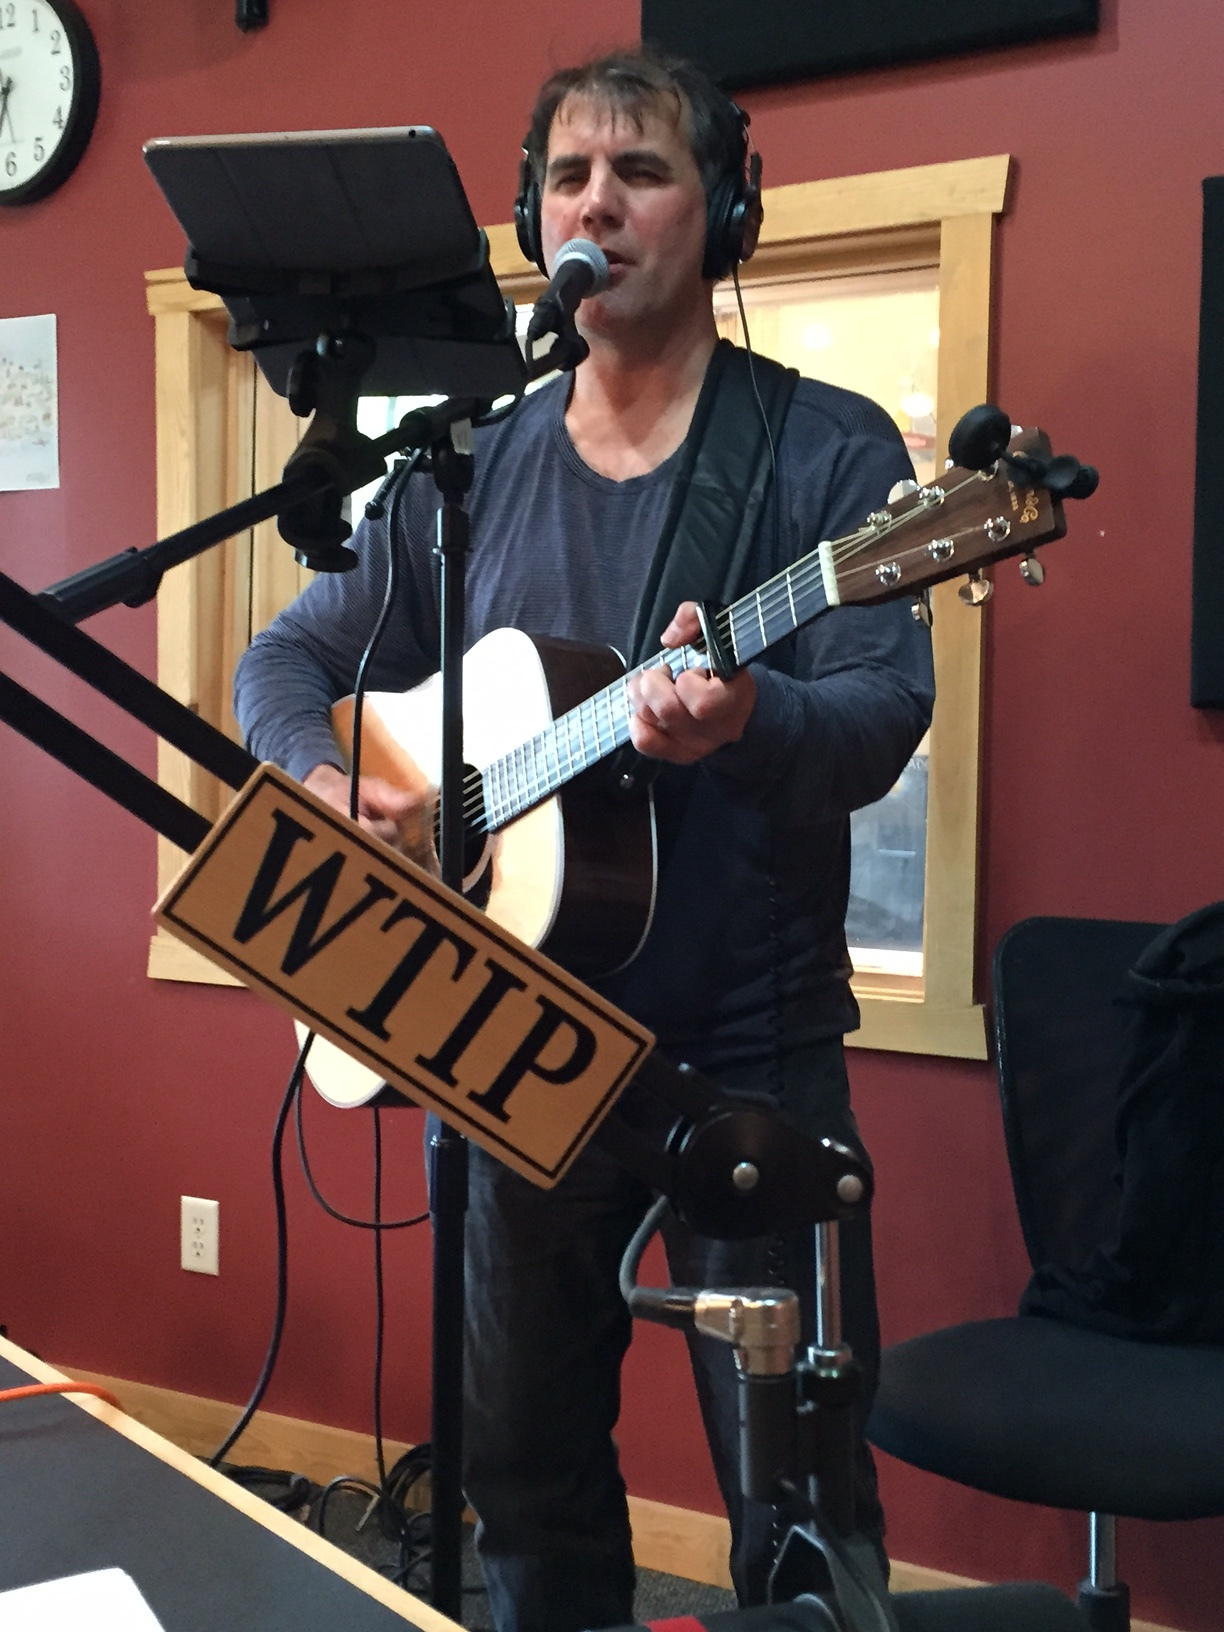 Pete Kavanaugh brings new music to The Roadhouse